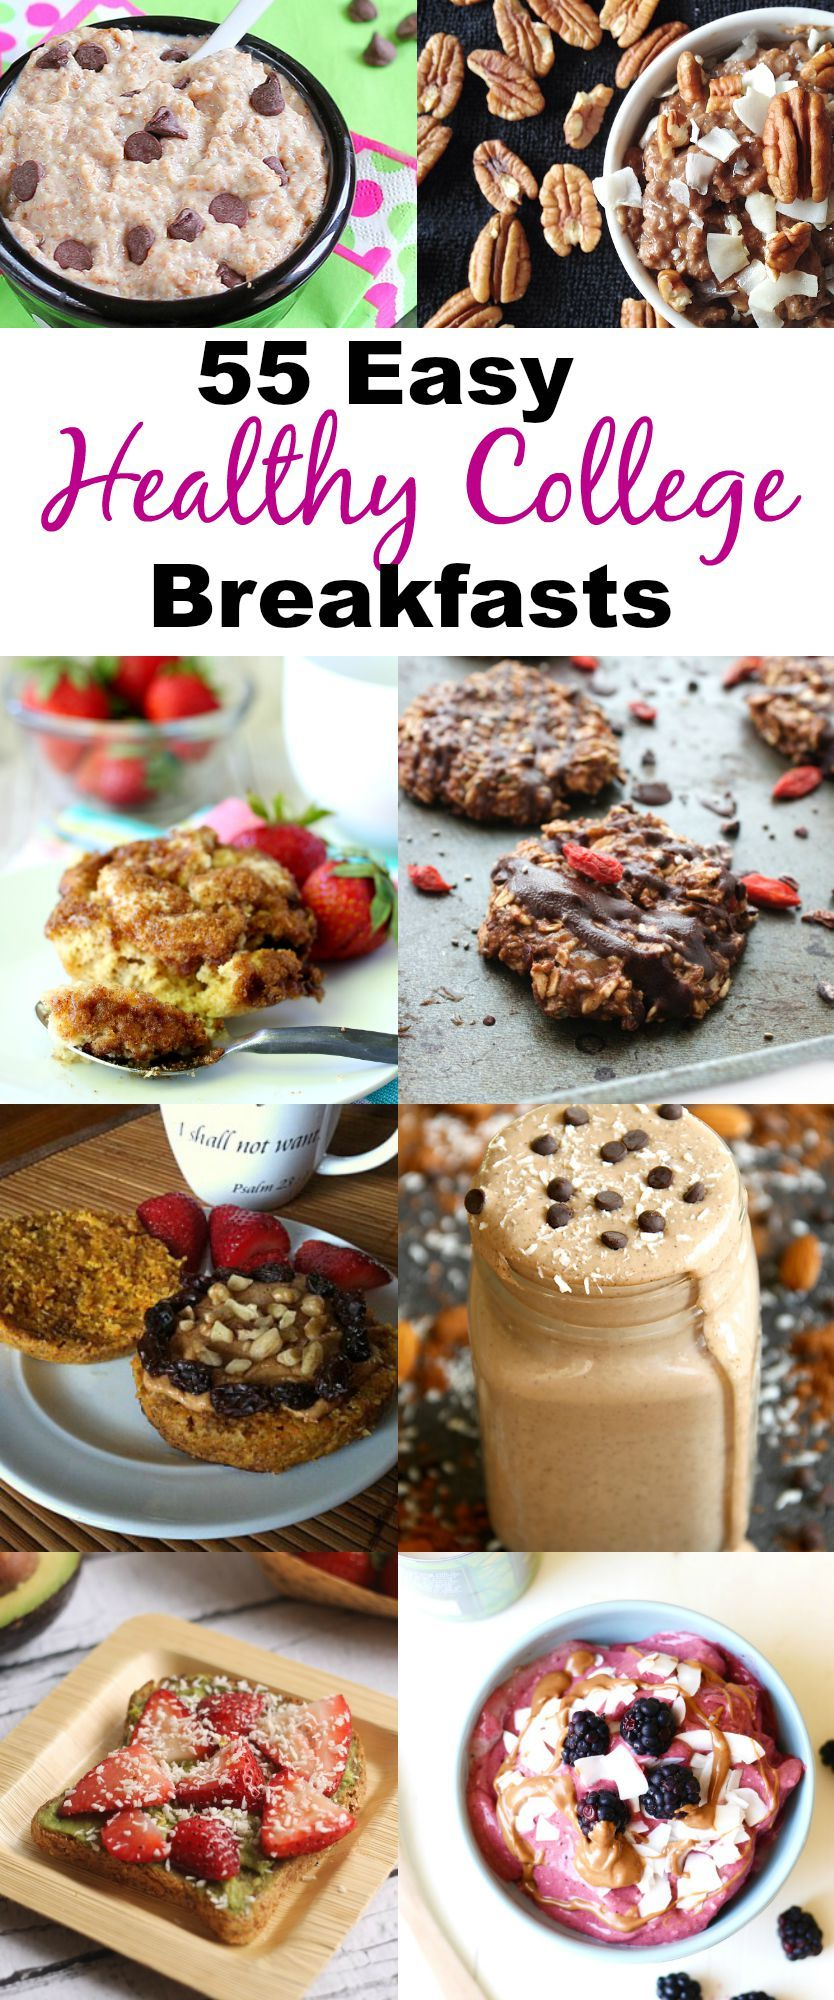 55 healthy college breakfast recipes | recipes to try | pinterest